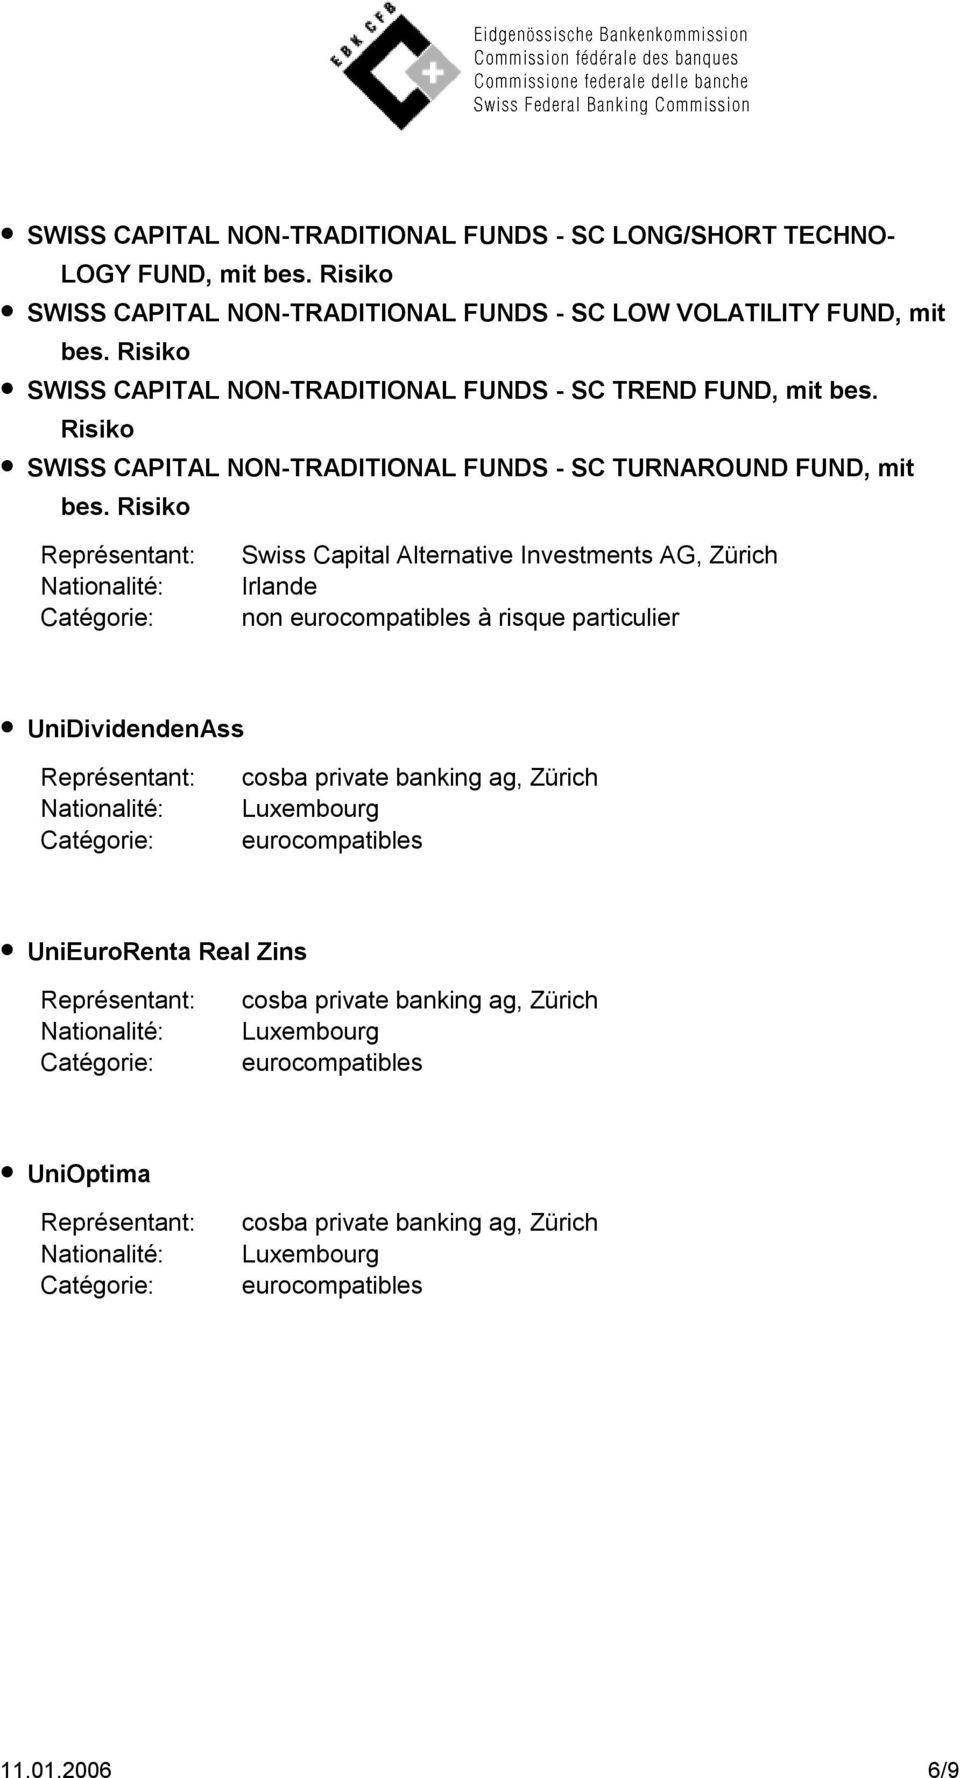 Risiko SWISS CAPITAL NON-TRADITIONAL FUNDS - SC TREND FUND, mit bes.